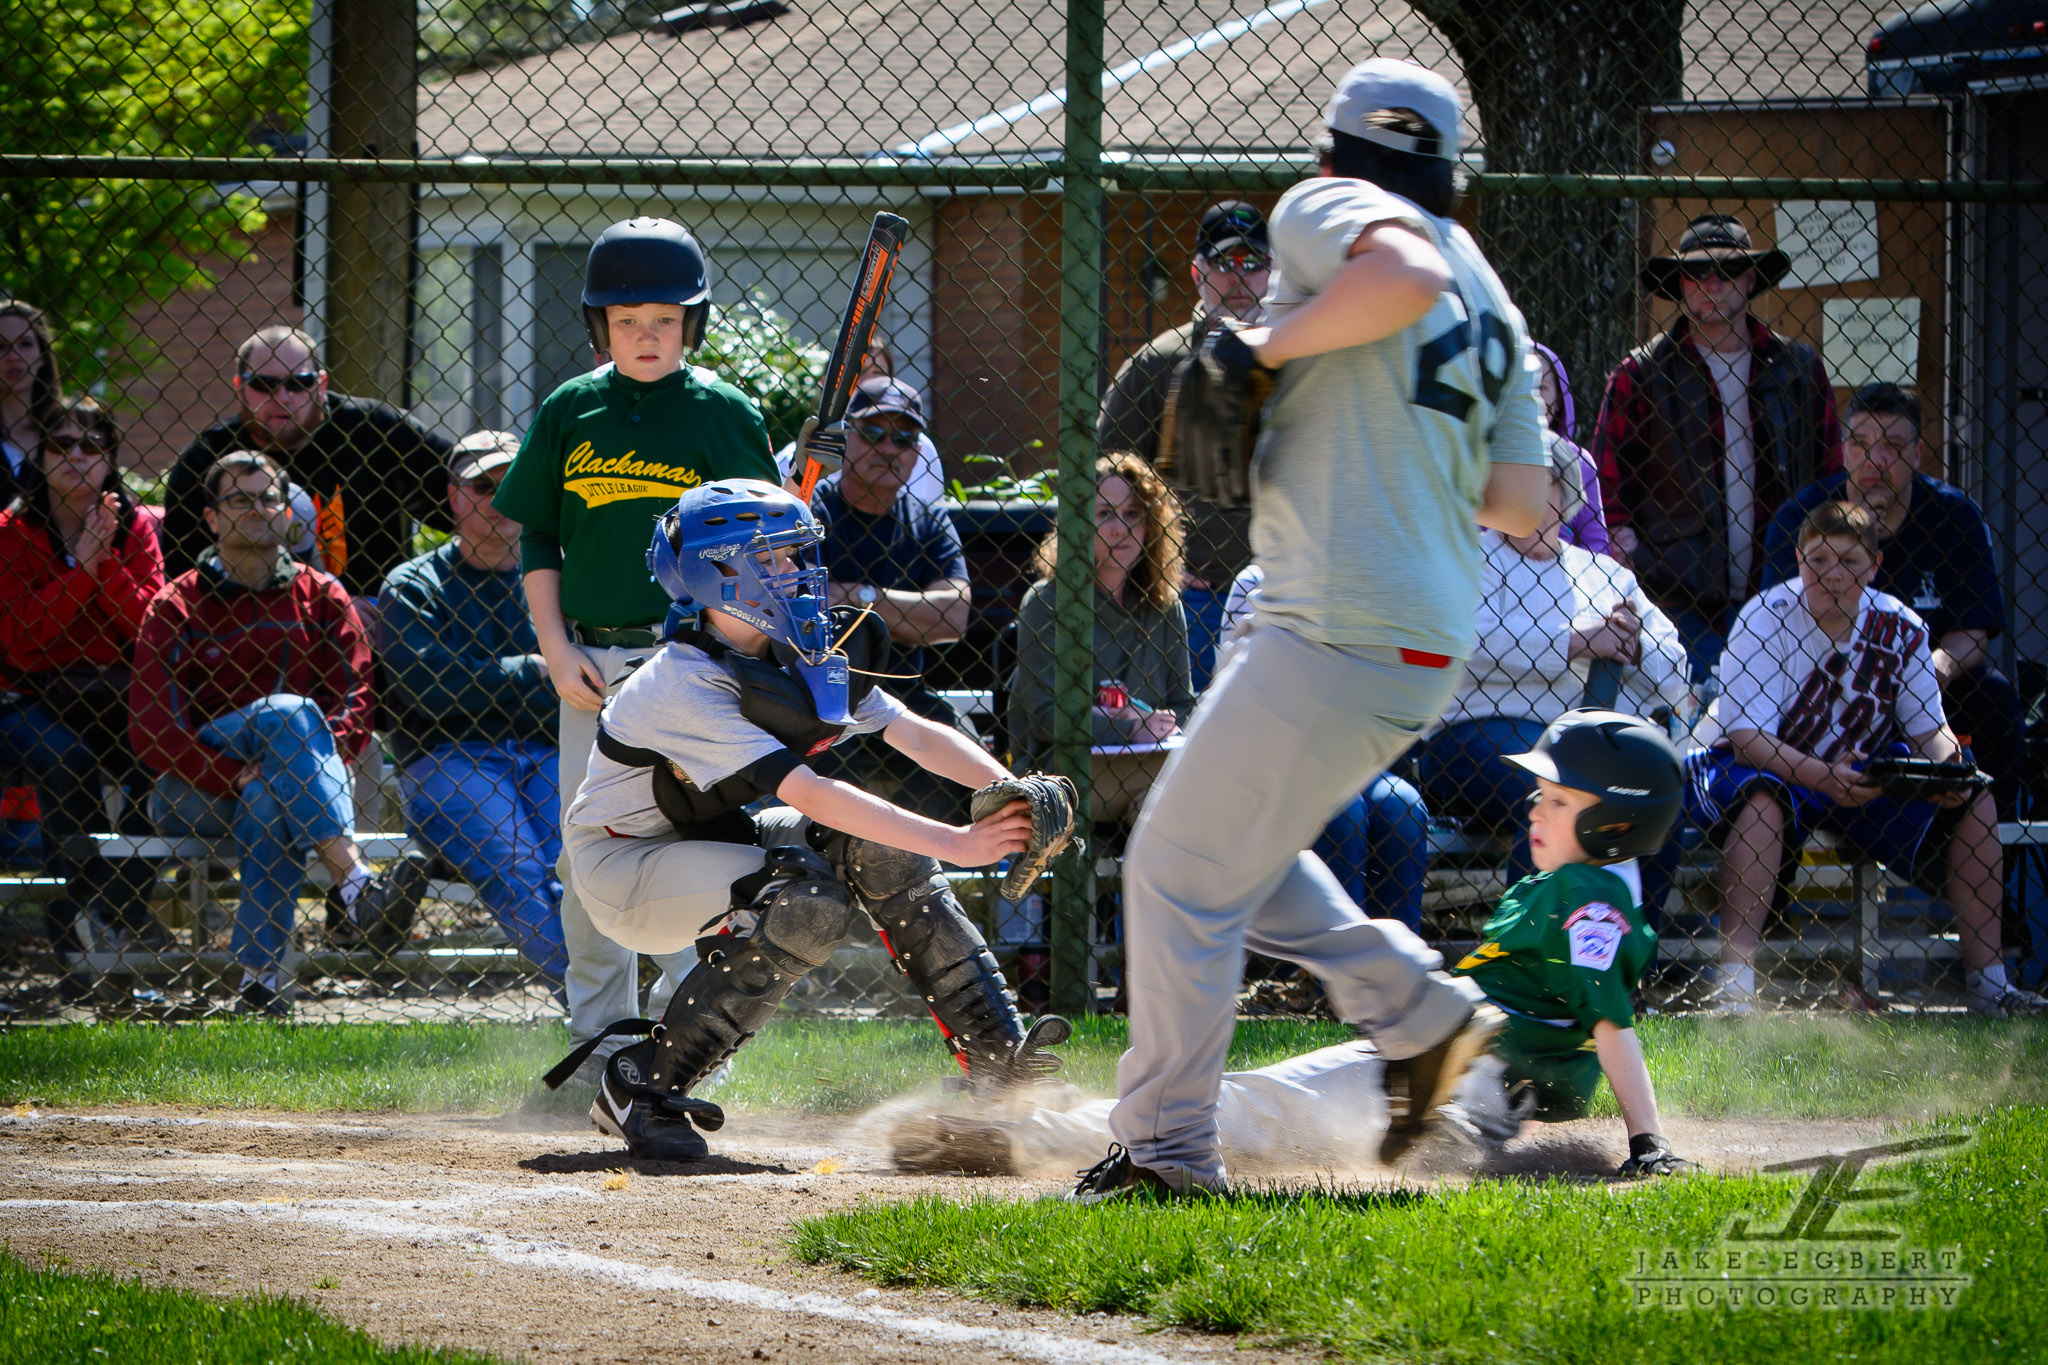 2014-04-12 - CLL Majors Green Sox vs. Portland/Powell Volcanoes - Click through to see the game gallery and store.